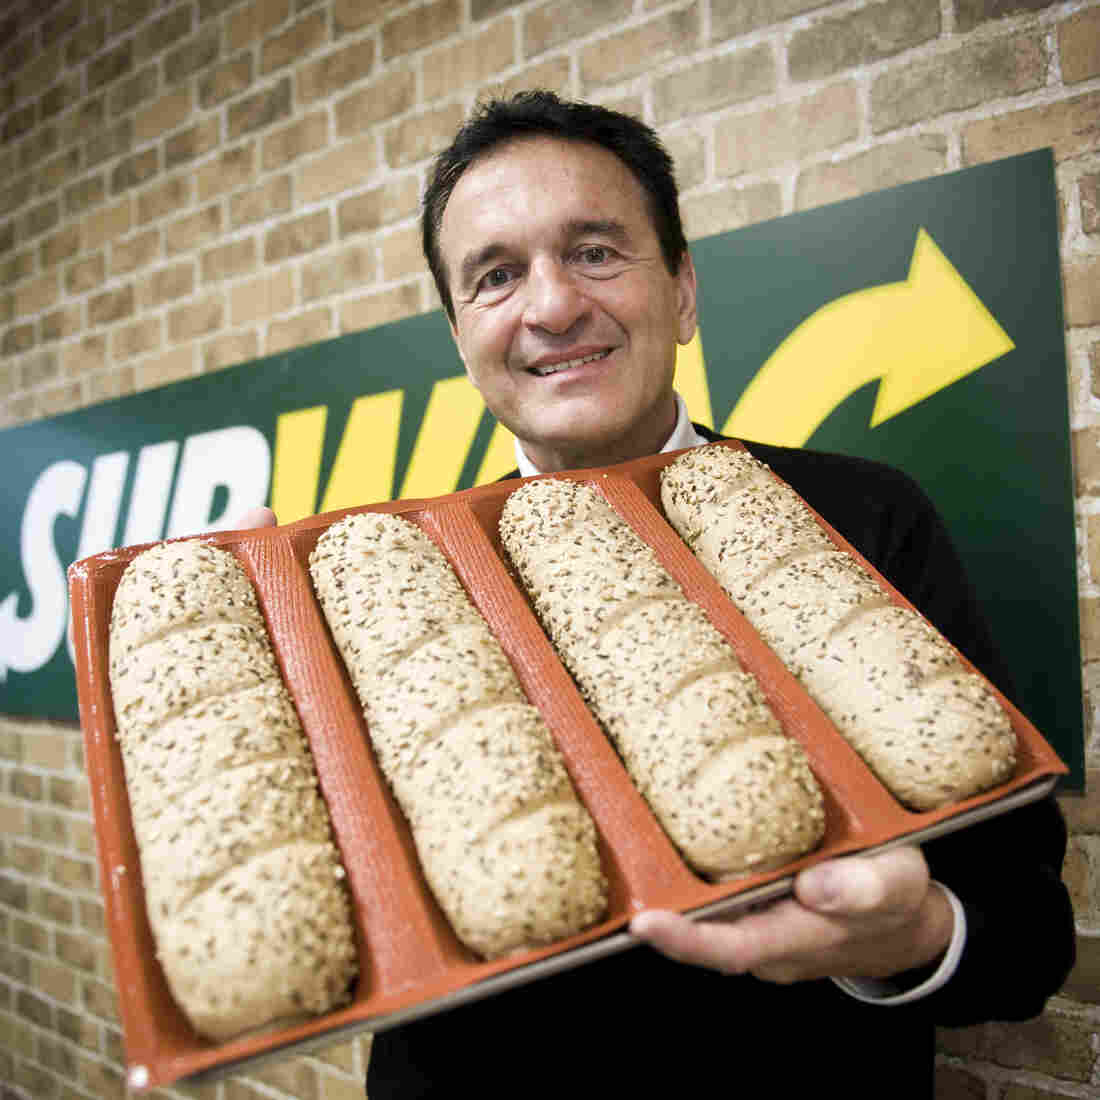 Sandwich chain Subway has announced plans to drop the additive azodicarbonamide from its fresh-baked breads. Above, Subway founder Fred DeLuca poses carrying bread for sandwiches.